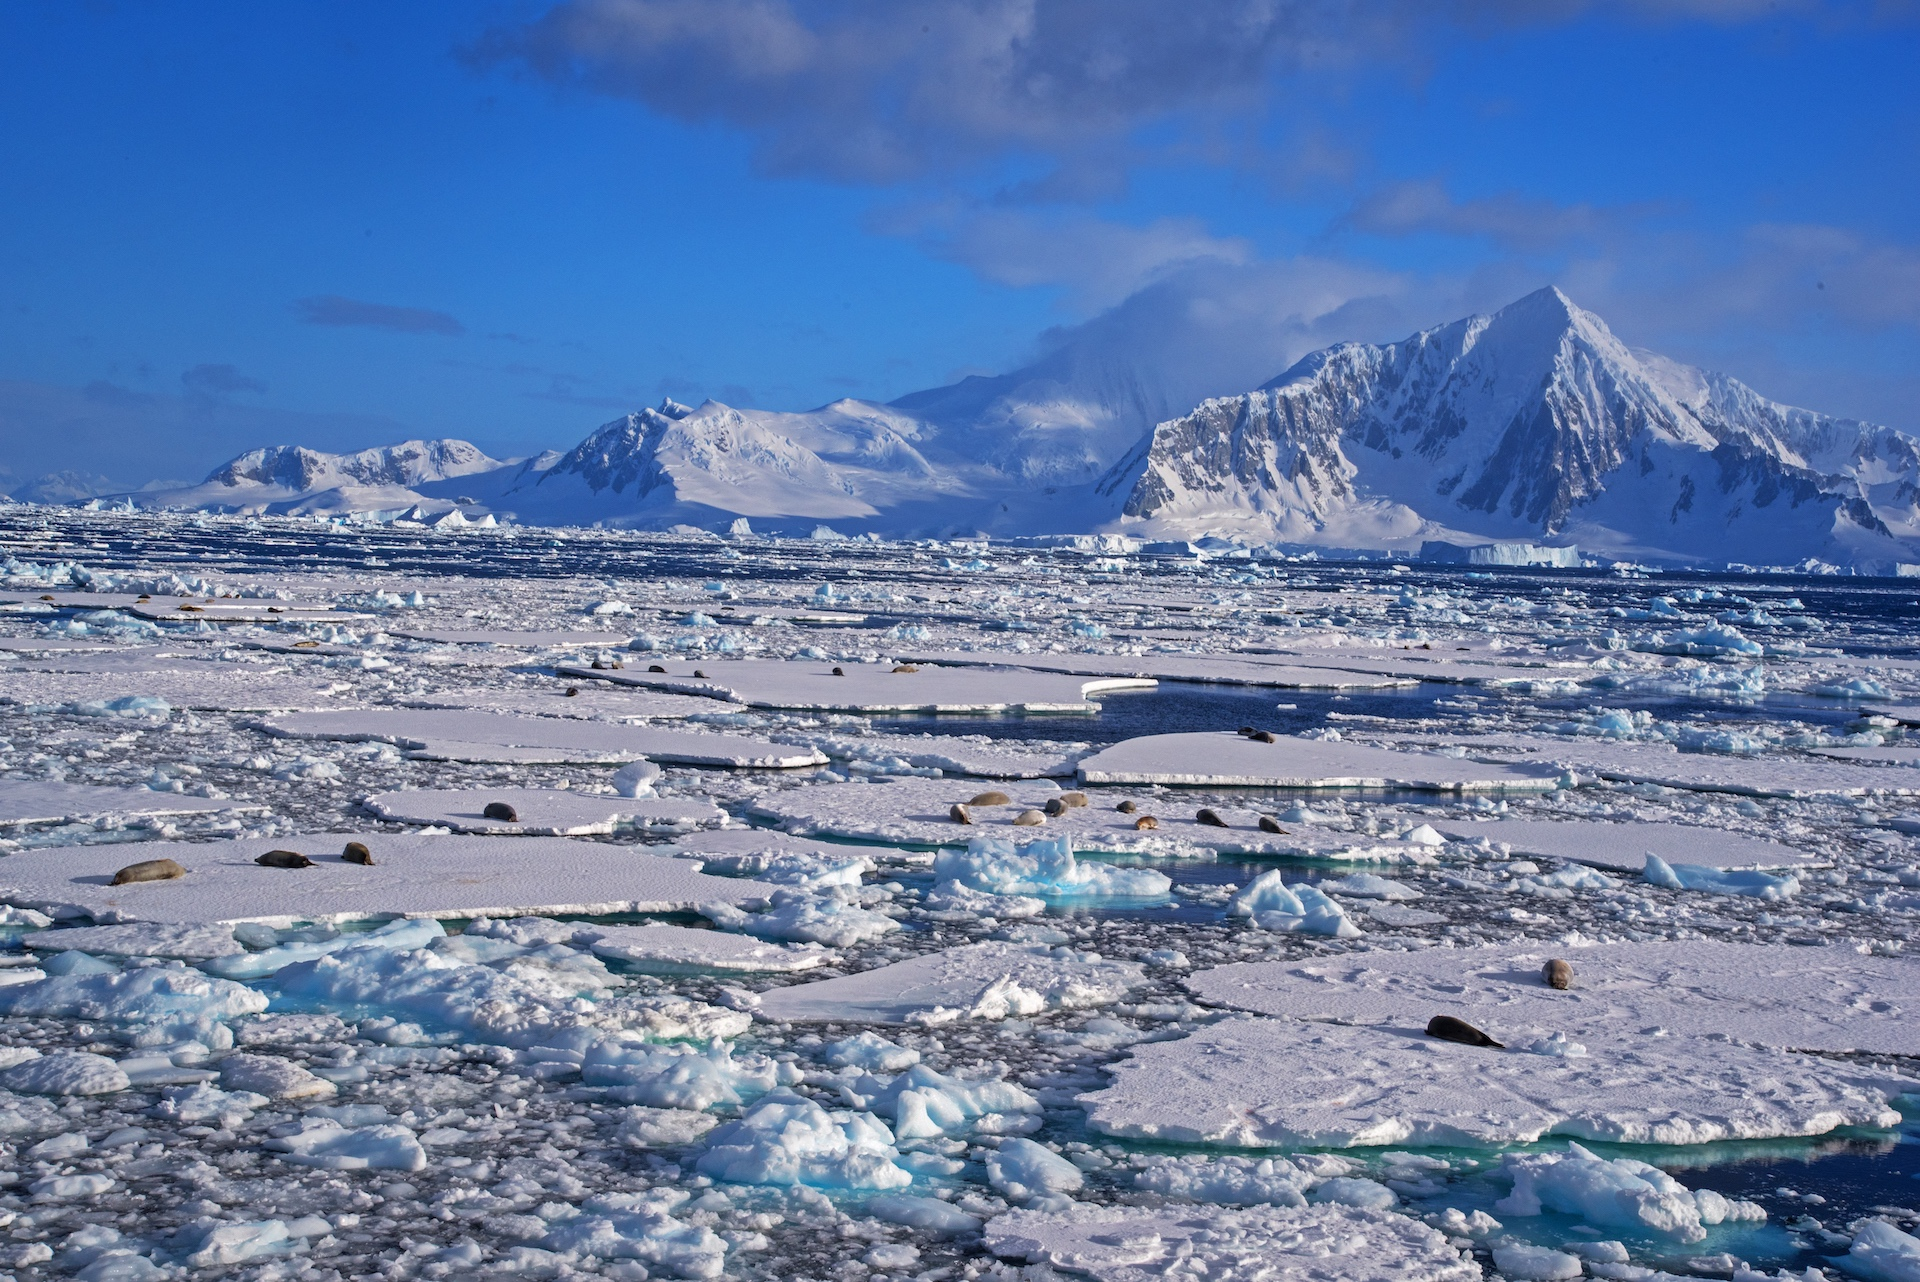 The landscape changes dramatically once you enter the Antarctic Peninsula. Invariably, you're looking at one of three things: rock, icebergs that form from freshwater, and sea ice that forms from saline water that freezes. Sea ice is a favoured haunt of the crab-eating Antarctic seal, pictured here.